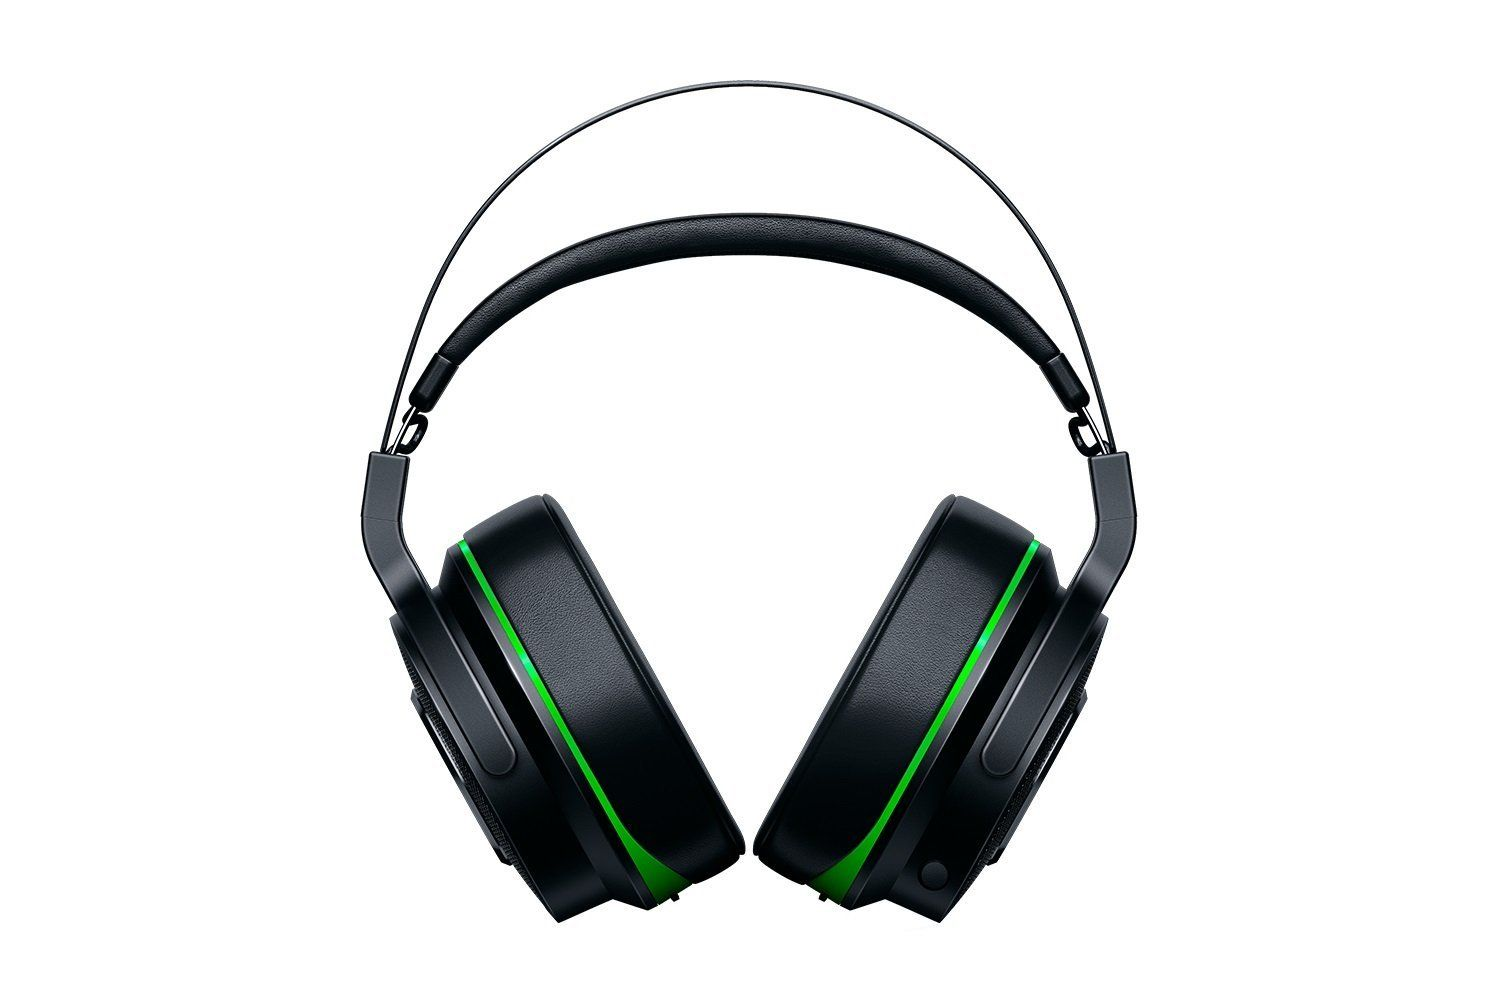 Гейминг слушалки Razer Ultimate - Xbox One - 3